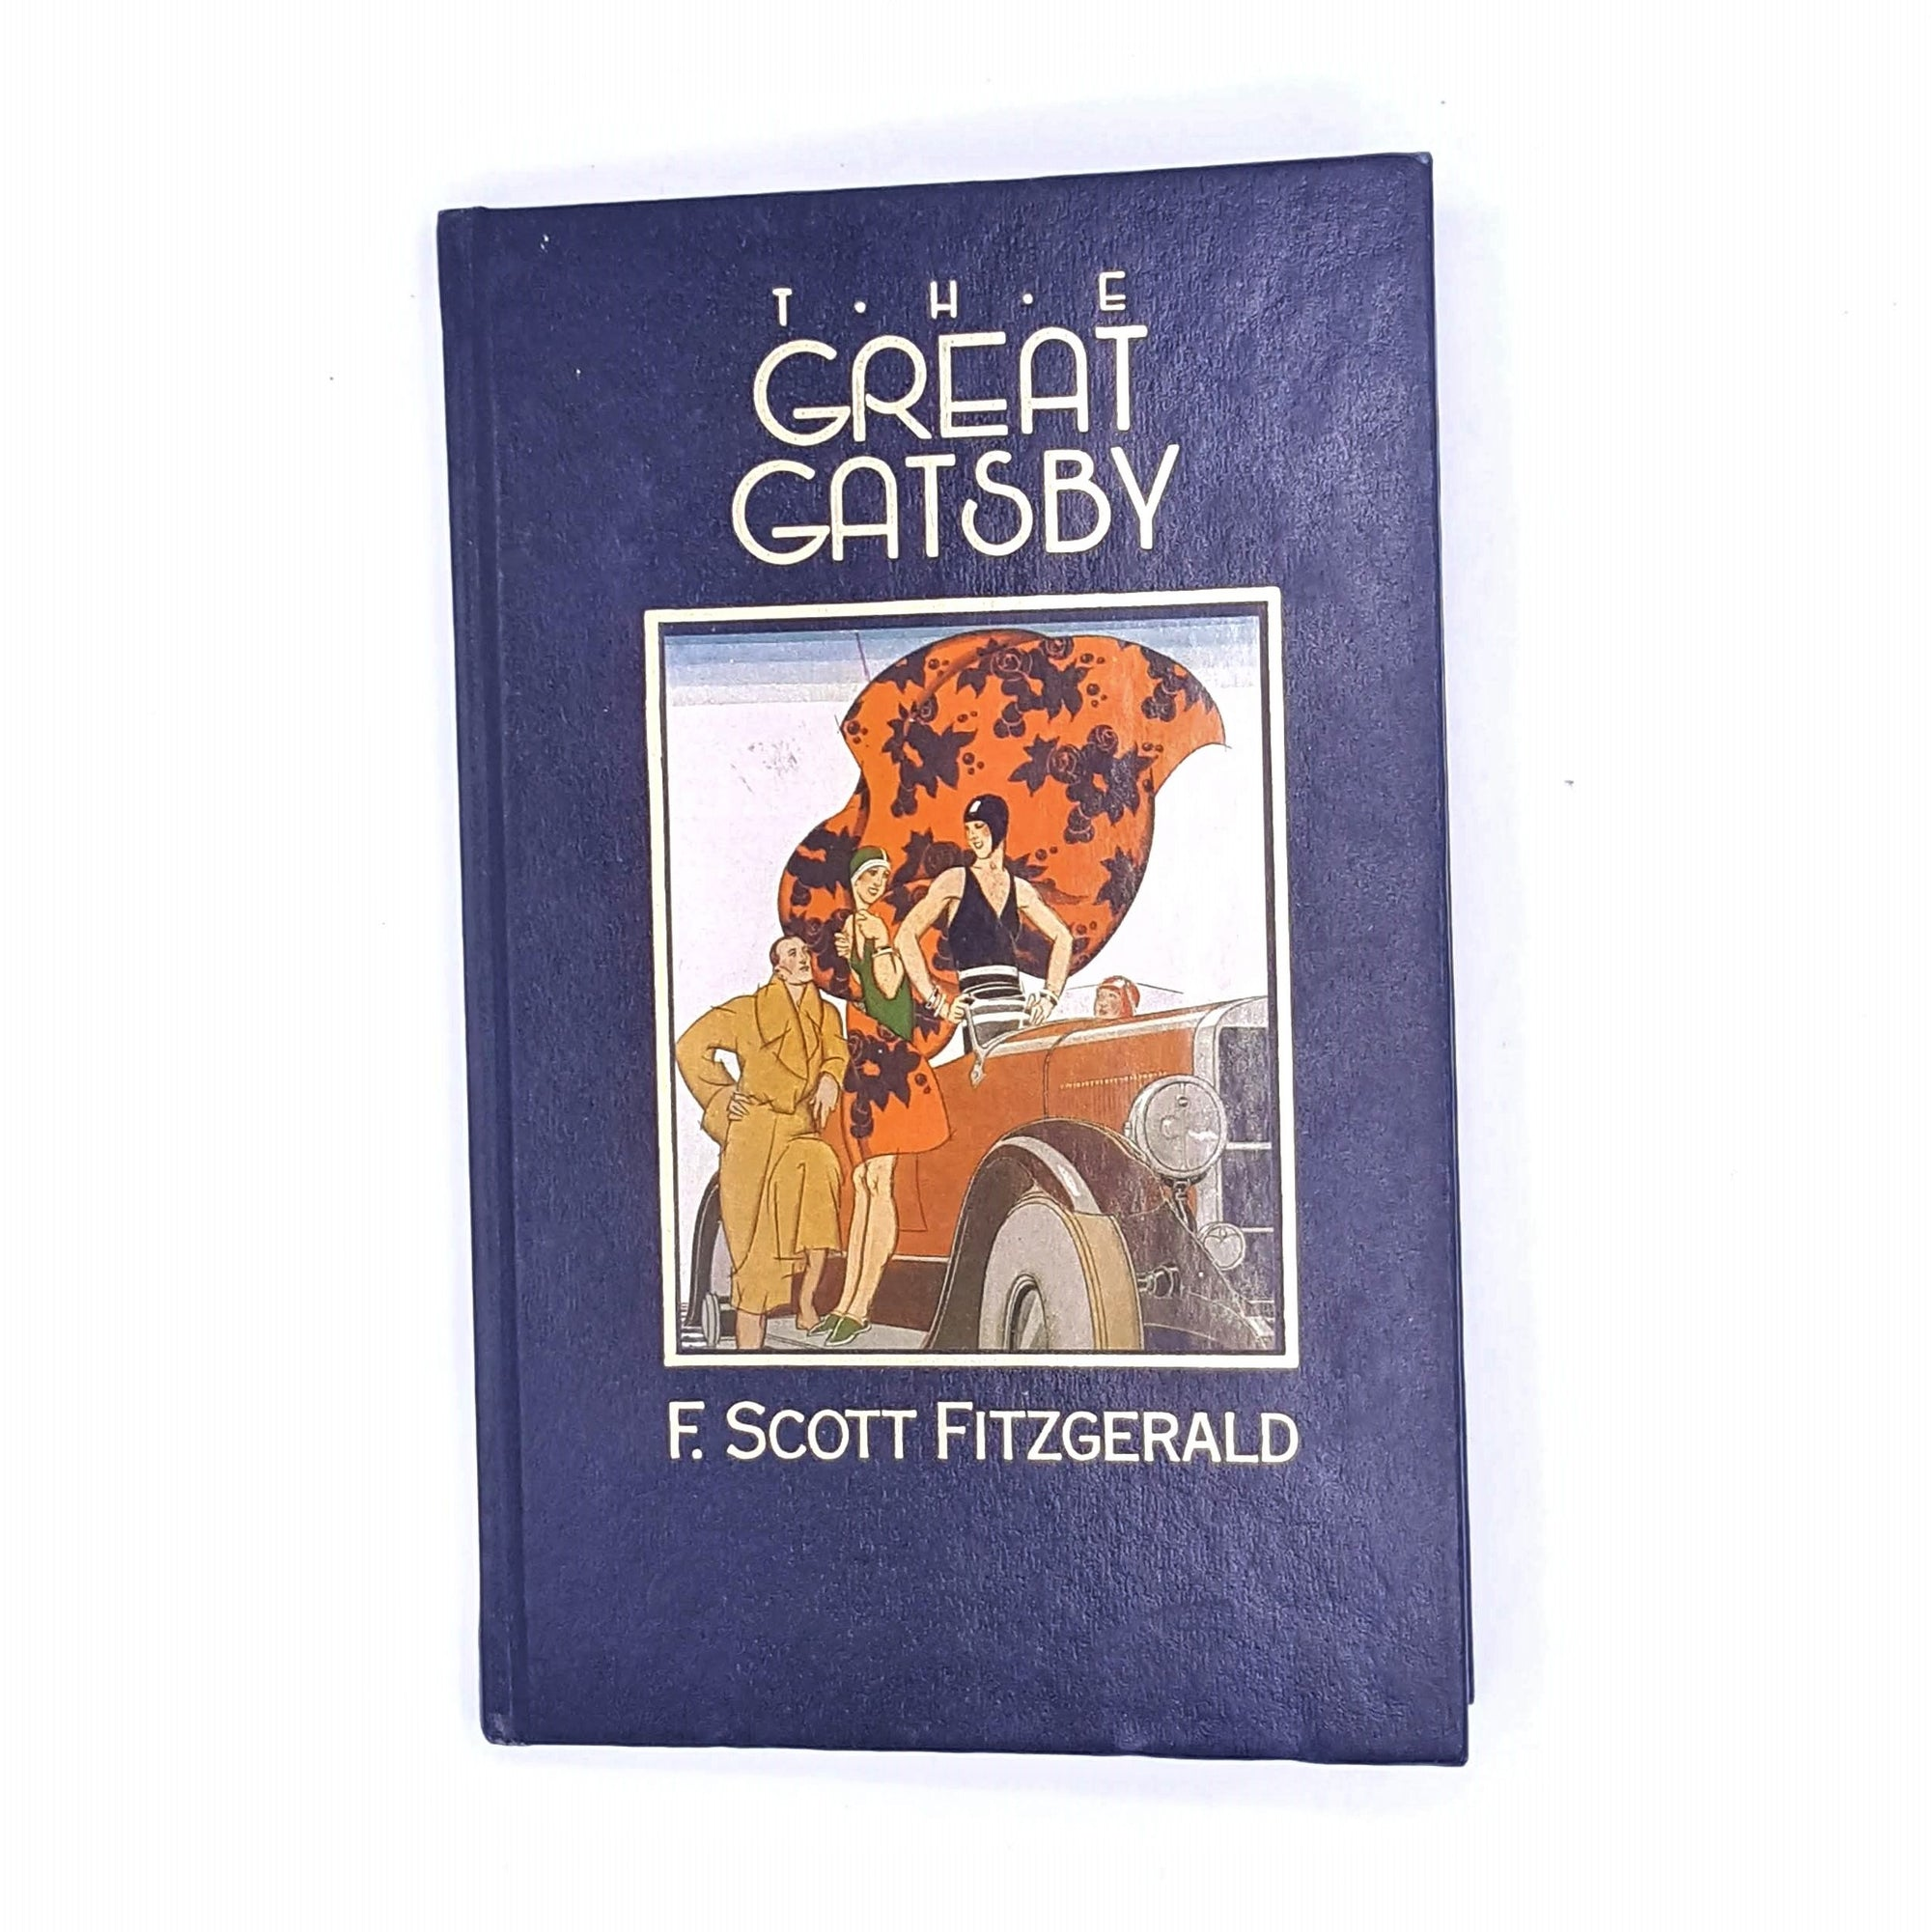 F. Scott Fitzgerald's The Great Gastby Vintage Book Classic